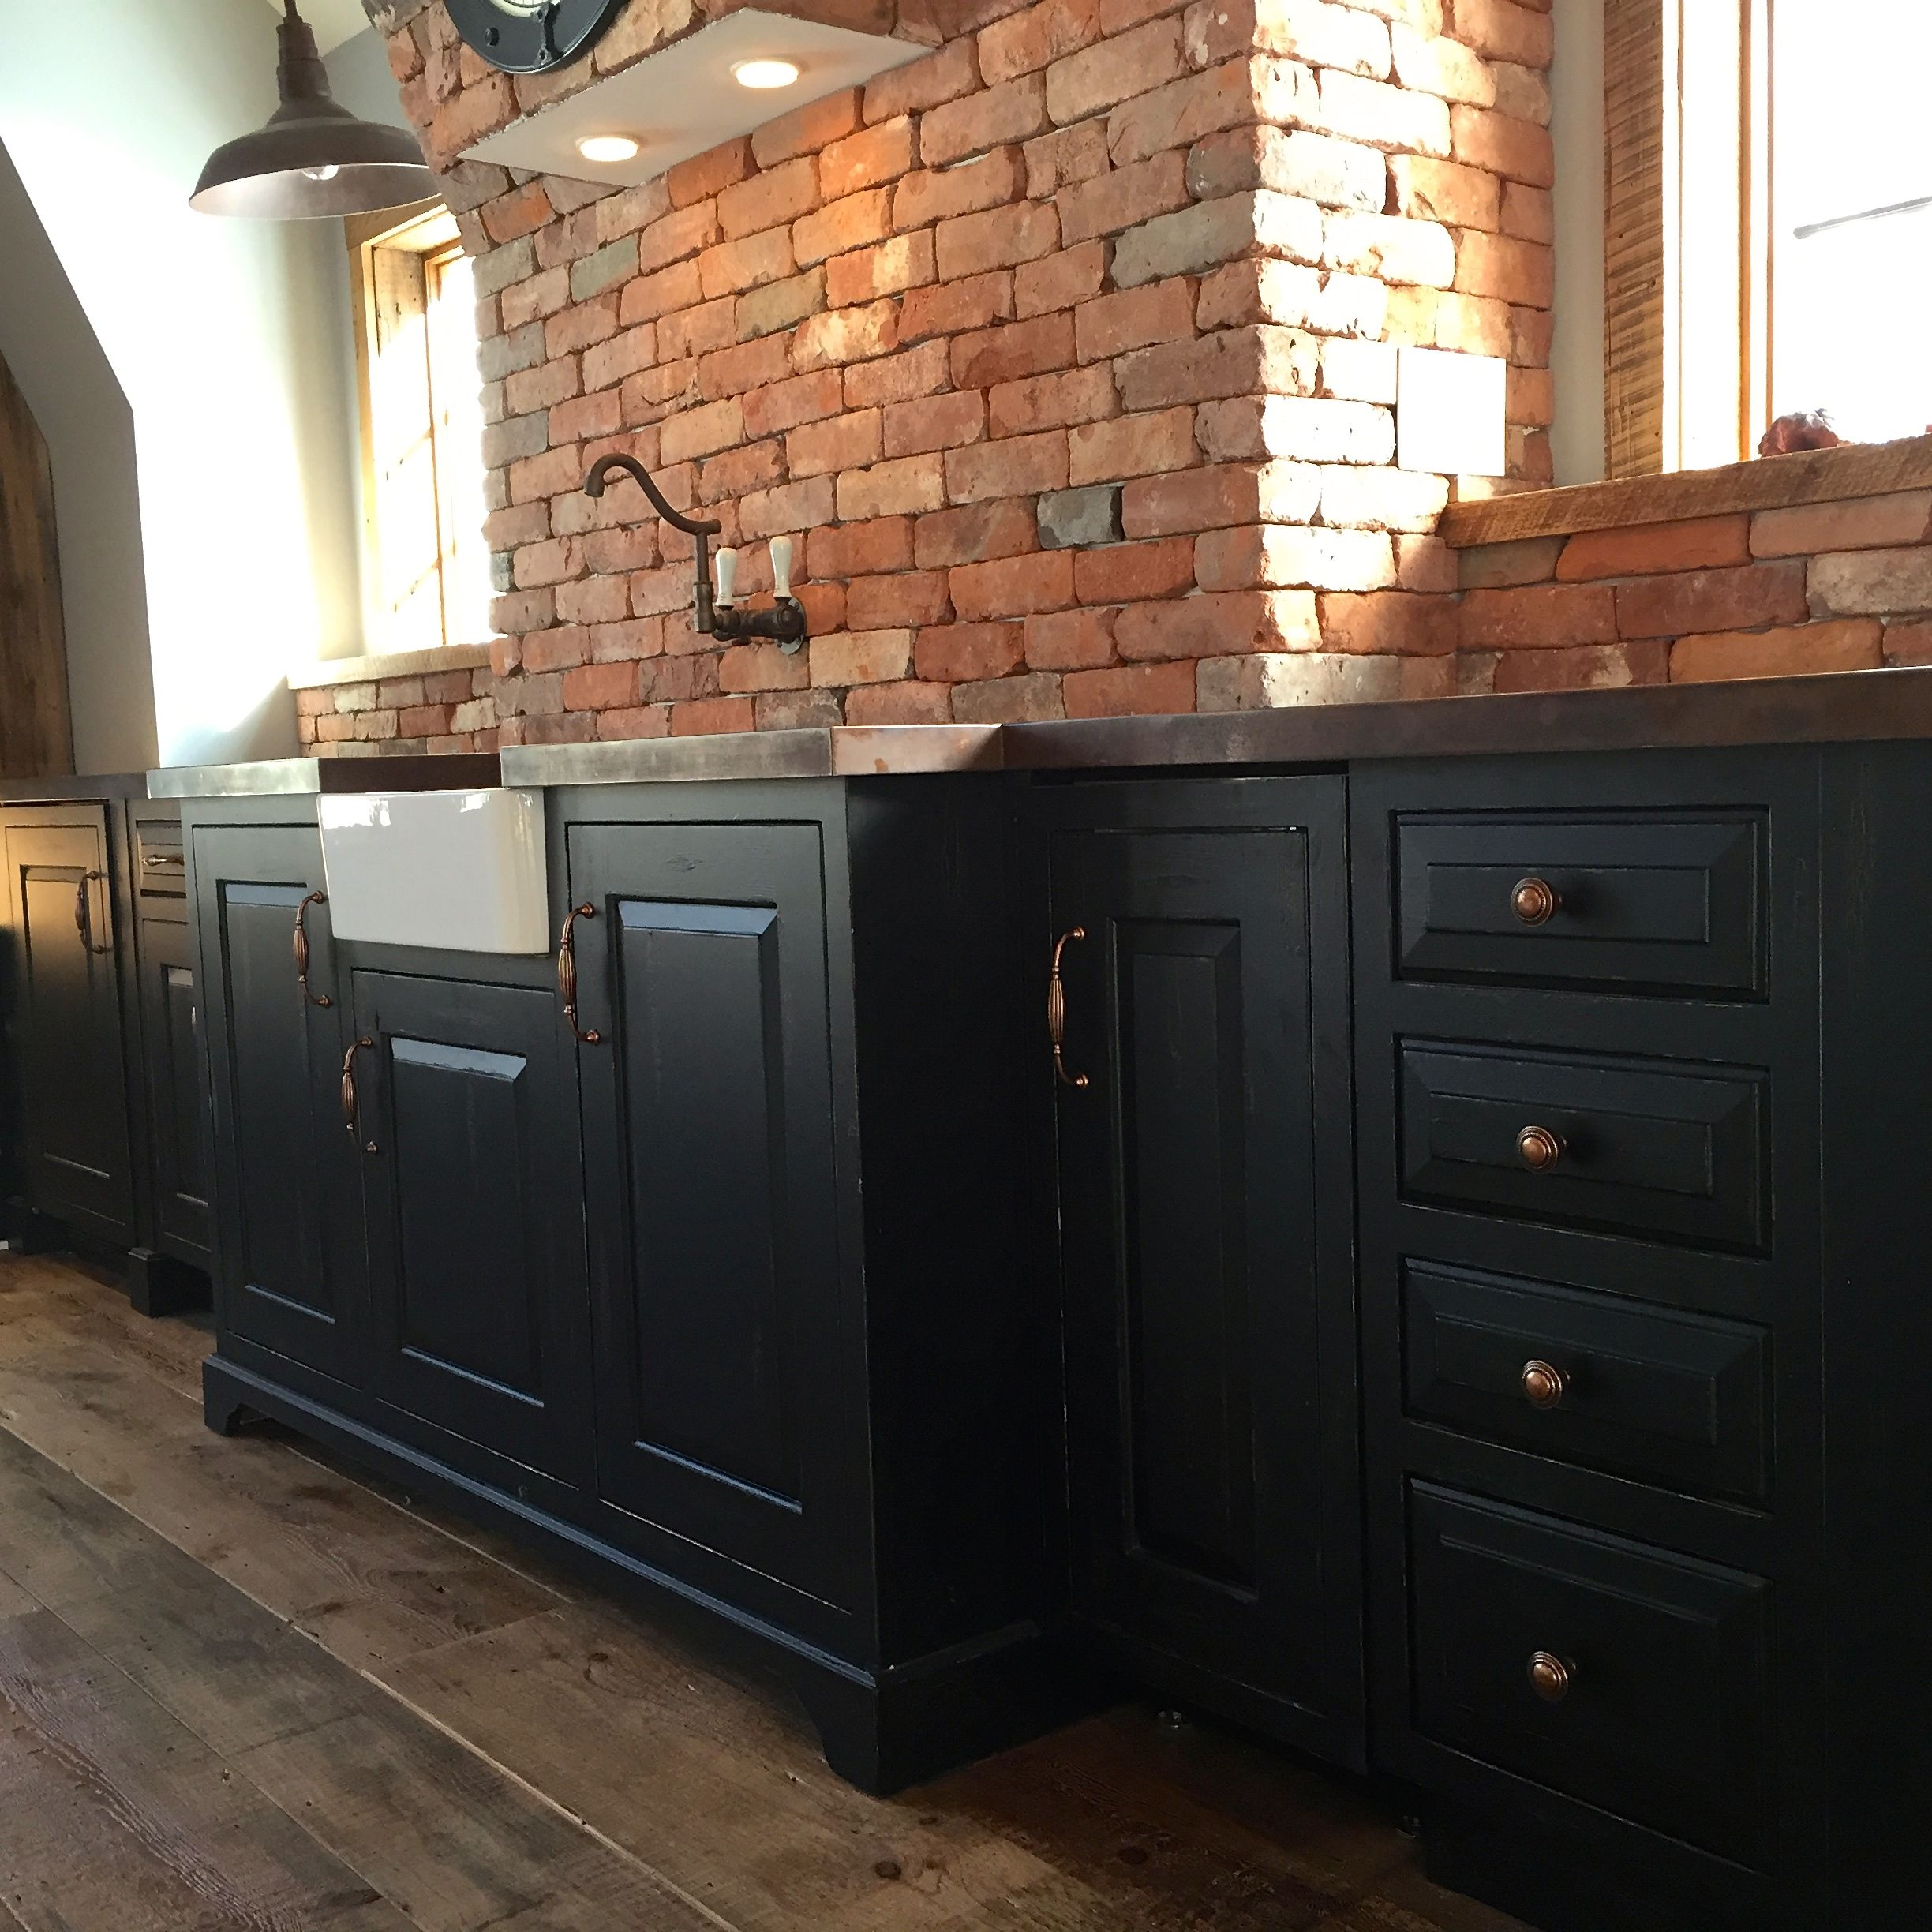 Plain Fancy Kitchen Cabinetry Governor S Black Brushmark Crackle Finish Adds To The Old World Feel Pa Fancy Kitchens Apron Front Sink Kitchen Cabinetry